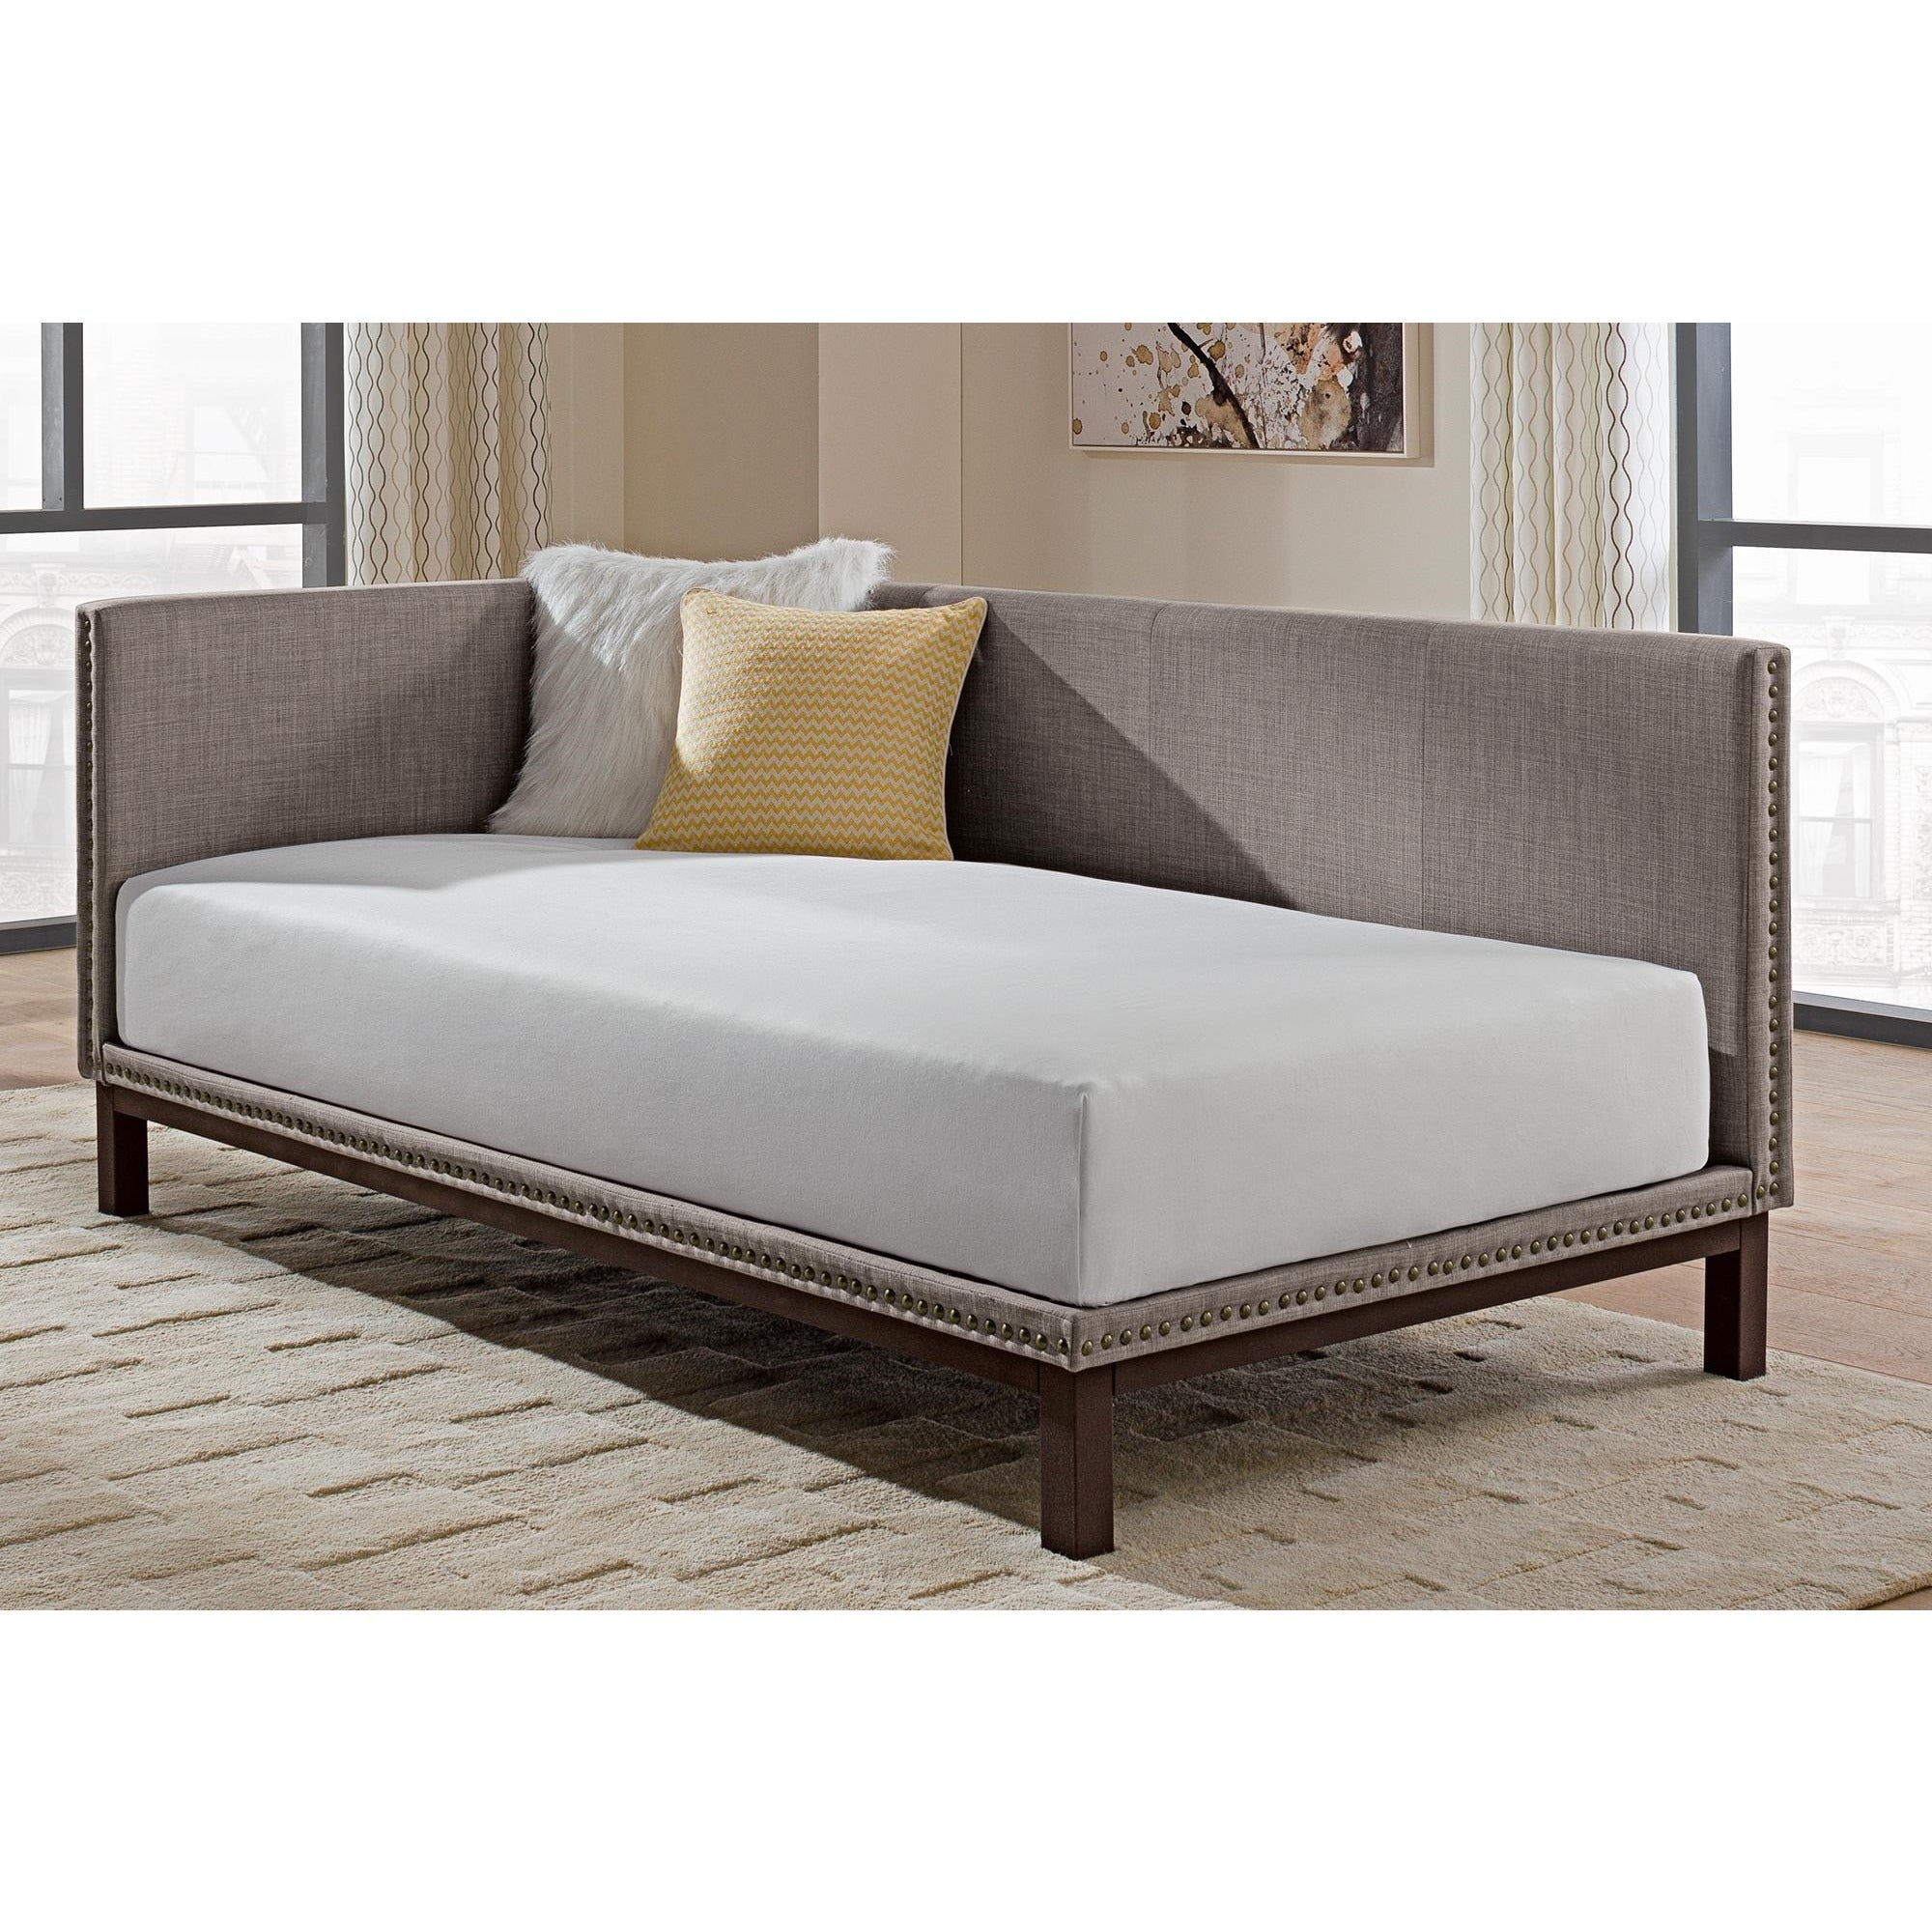 Superieur Shop Maison Rouge Wroth Mid Century Grey Upholstered Modern Daybed   Free  Shipping Today   Overstock.com   21895216